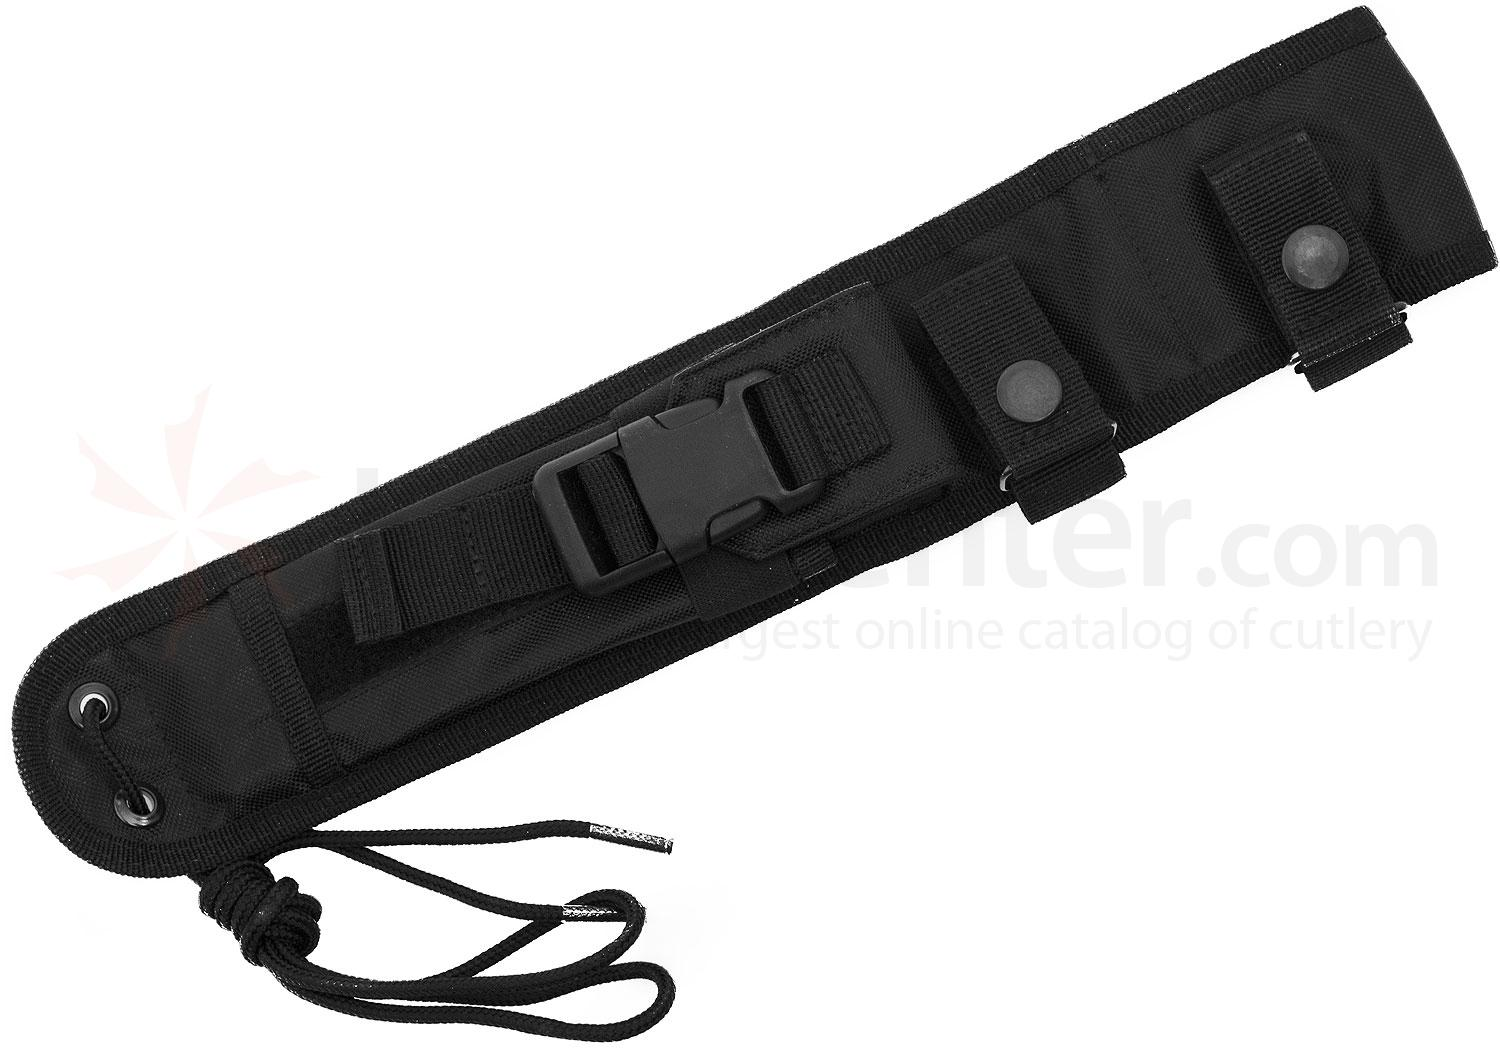 Ontario 8637 MOLLE Compatible Cordura Sheath, Fits RAT5 Knife